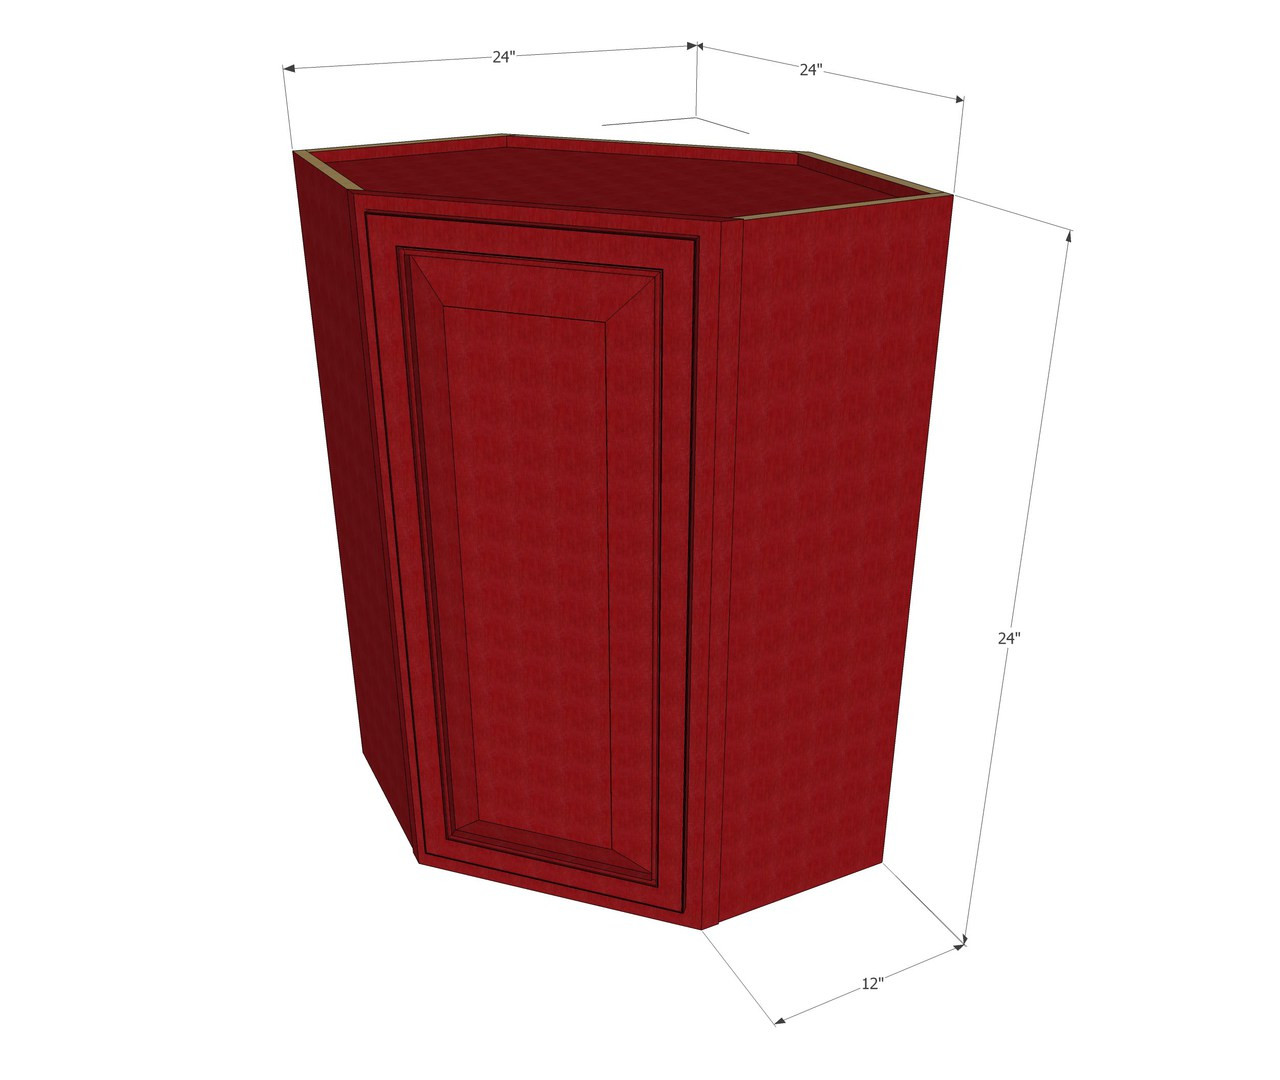 grand reserve cherry diagonal corner wall cabinet - 24 inch wide x